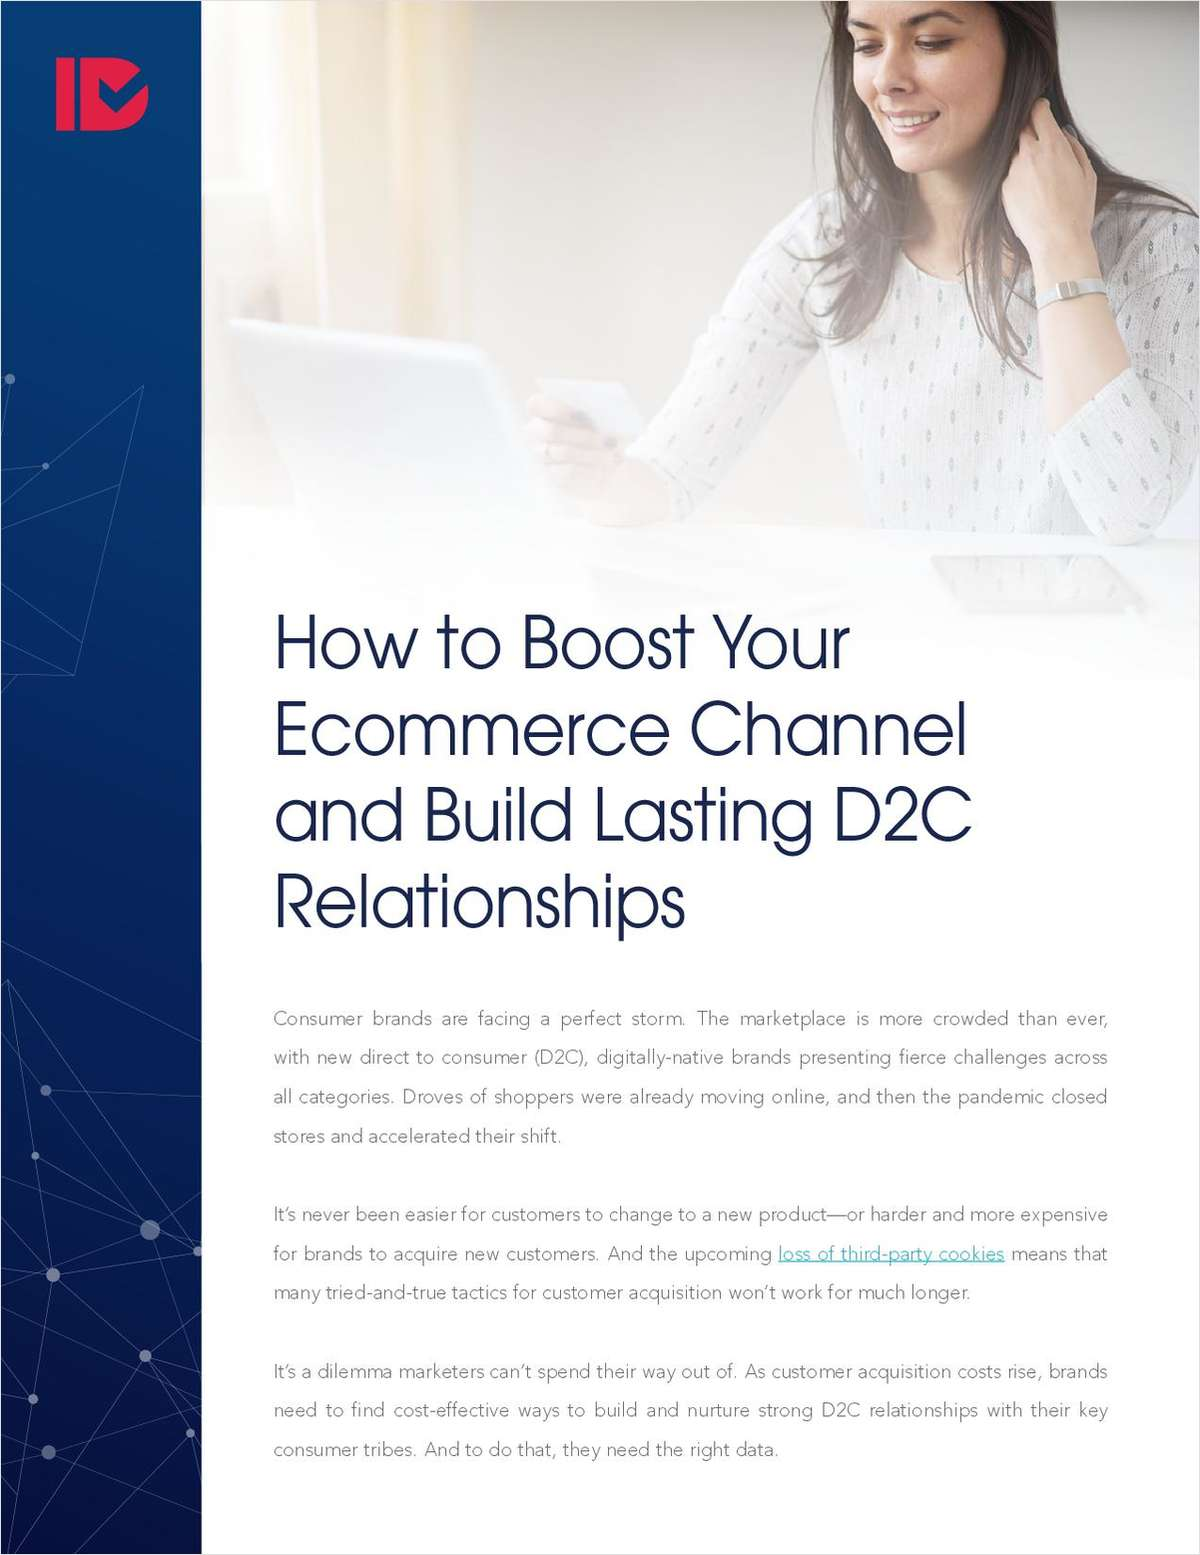 6 Tips to Boosting Your Ecommerce Channel and Building Lasting D2C Relationships